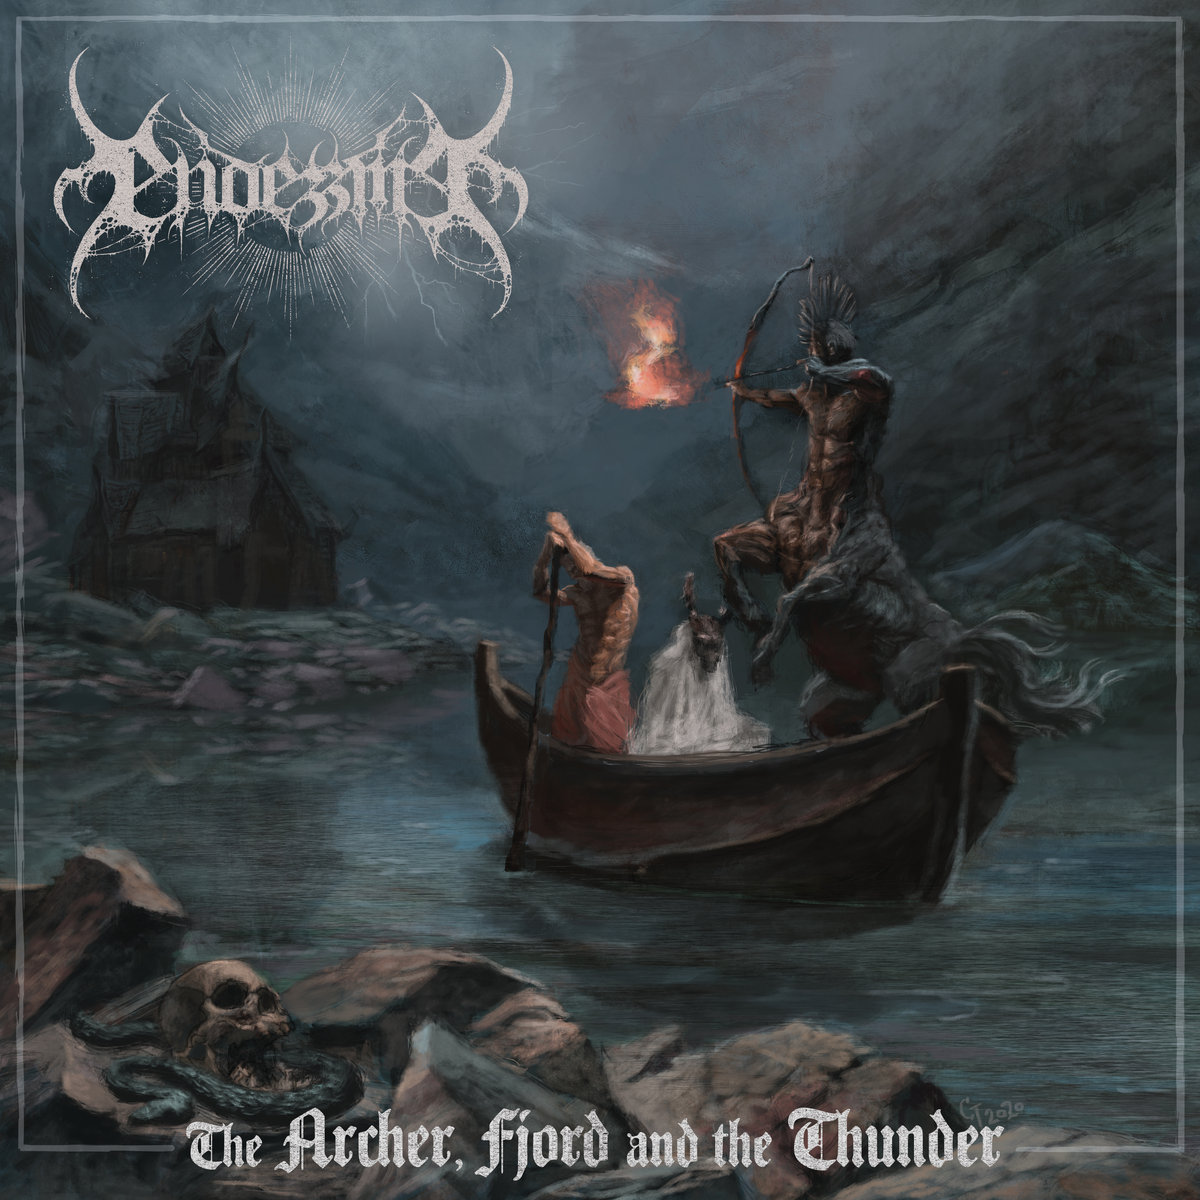 The Archer, Fjord And The Thunder ENDEZZMA cover artwork